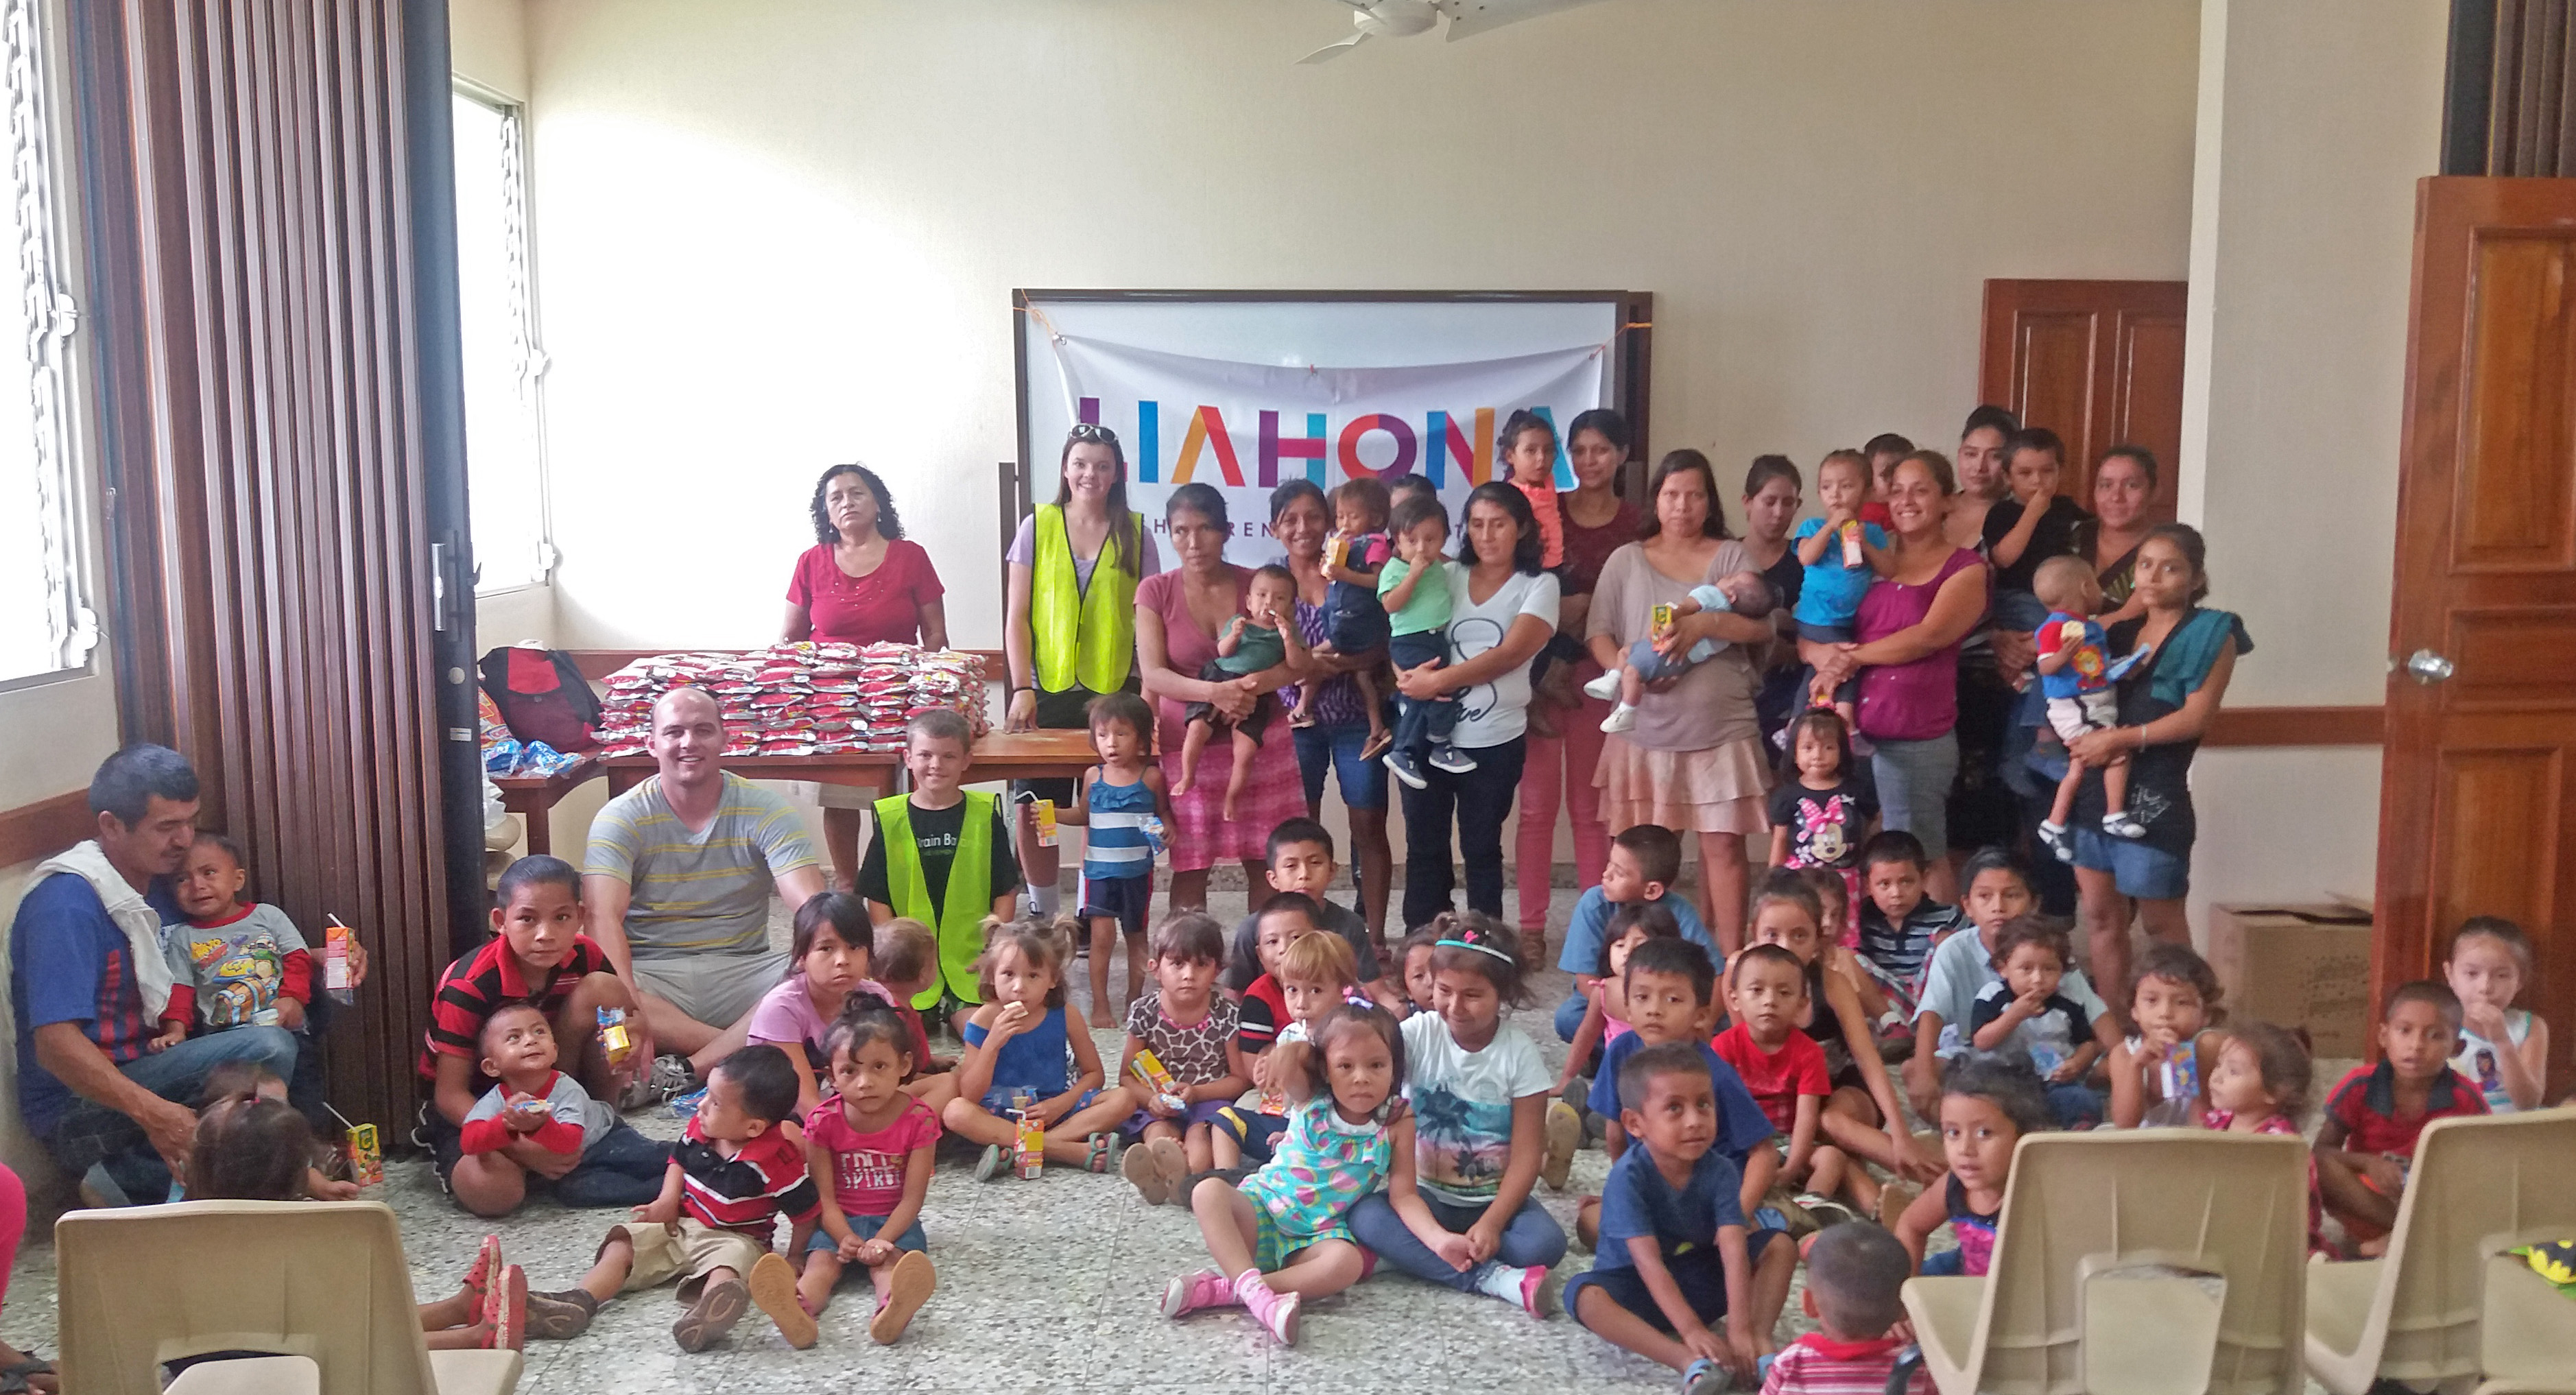 Nutritour-Guatemala-2016-3-with-children-and-families-in-chapel-cropped